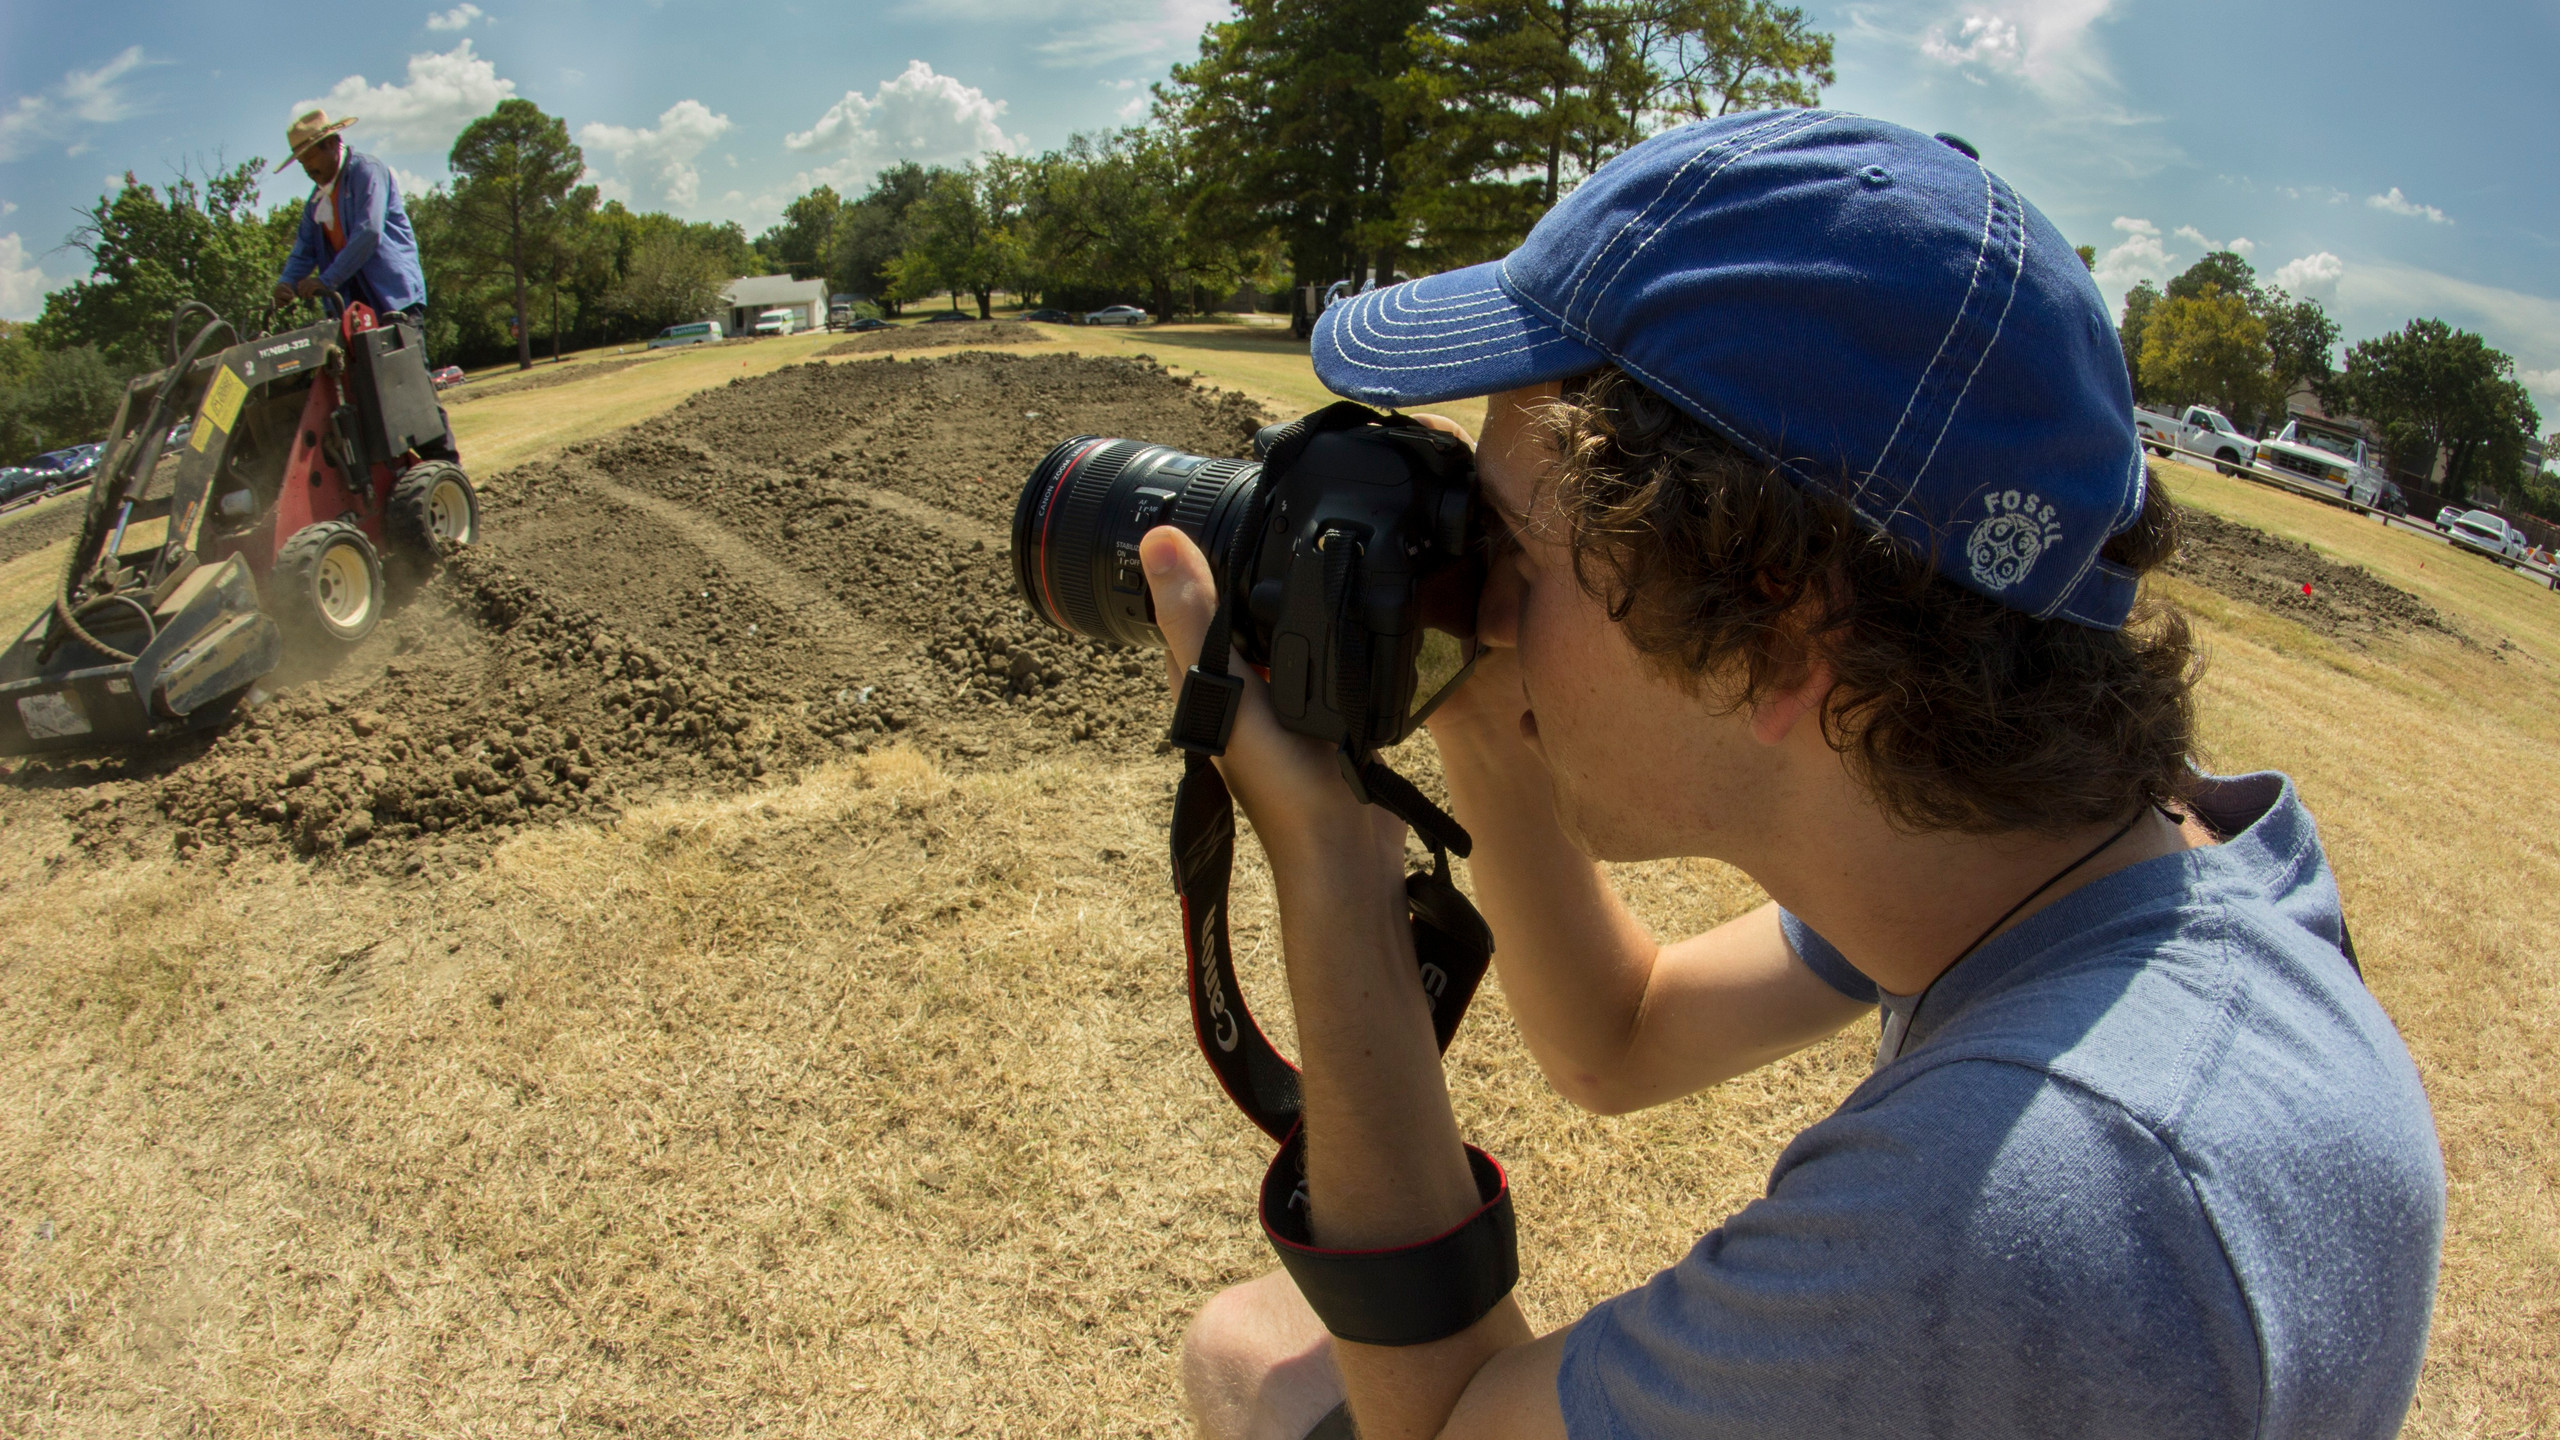 Rookie photographer Winston Henvey crouches to take a photo of workers preparing mud volleyball fields at UT-Arlington.